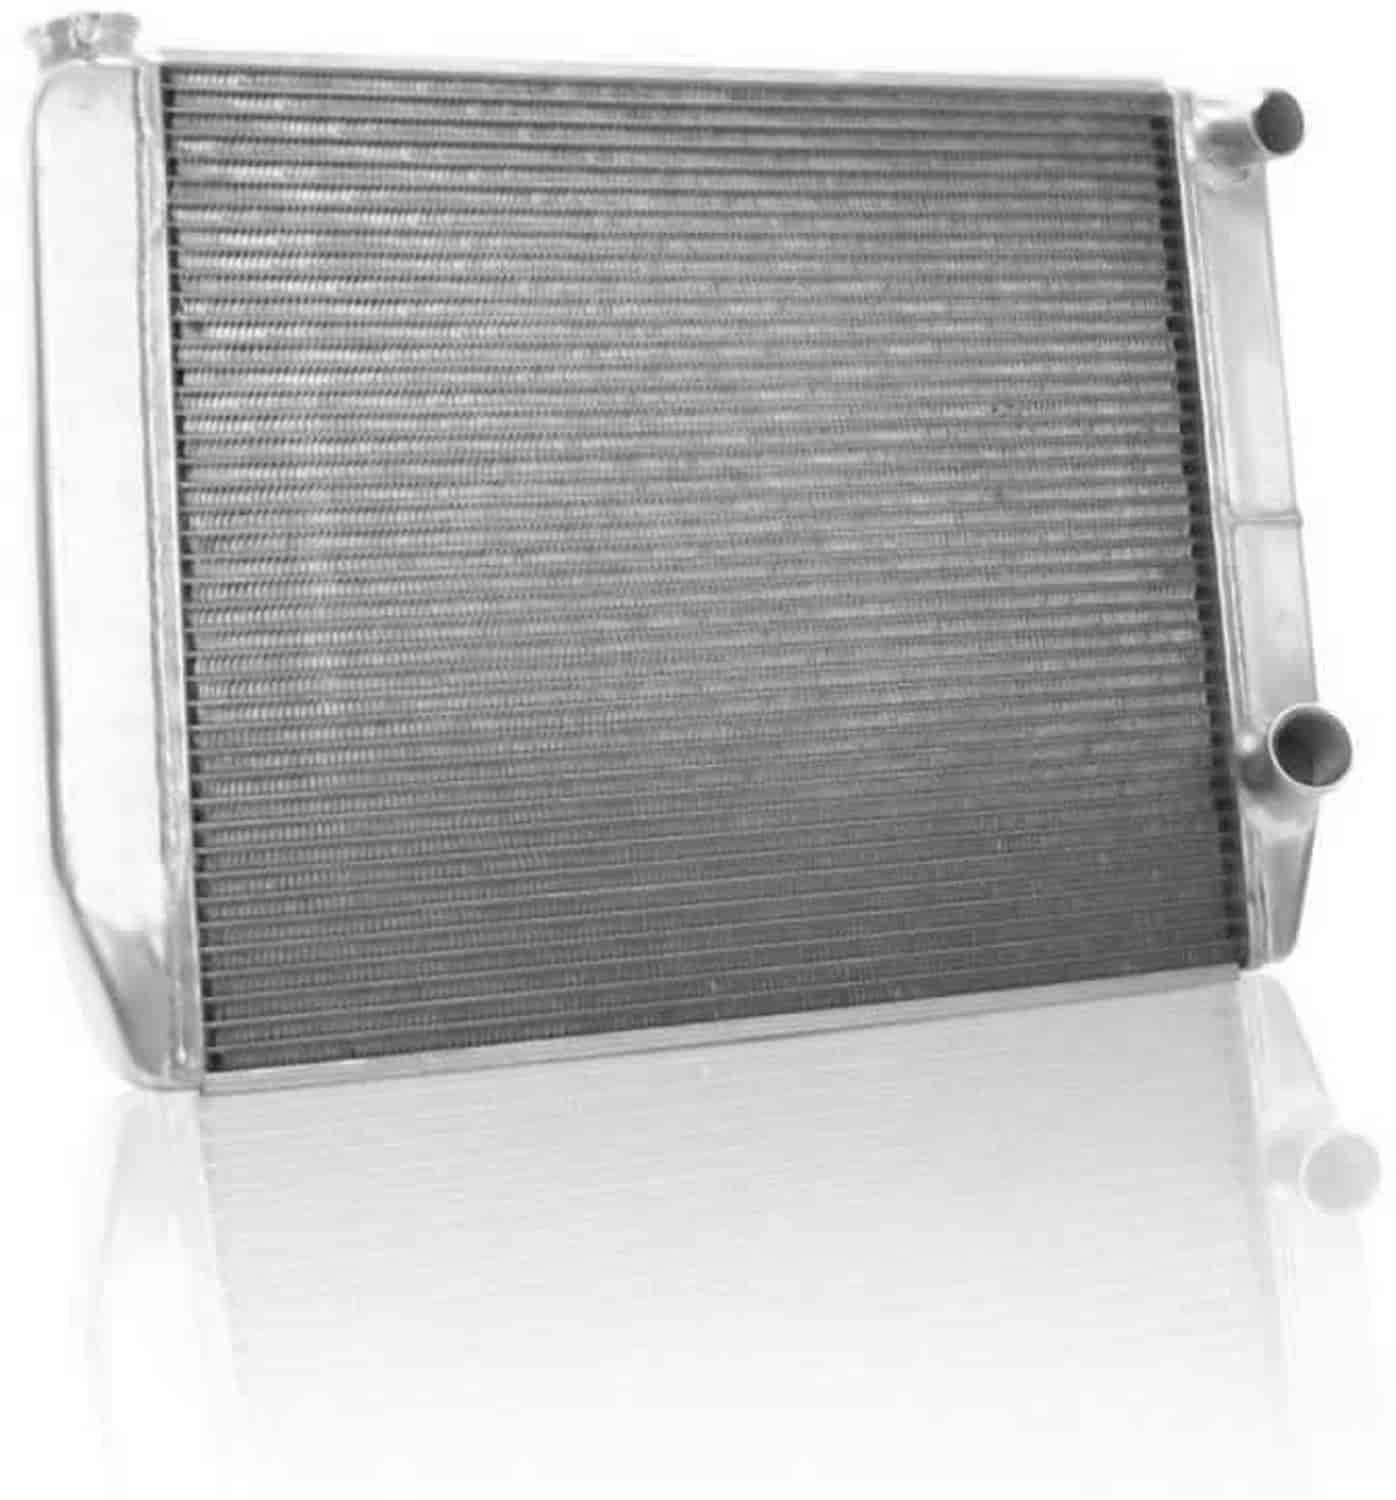 Griffin Radiators 1-28222-X